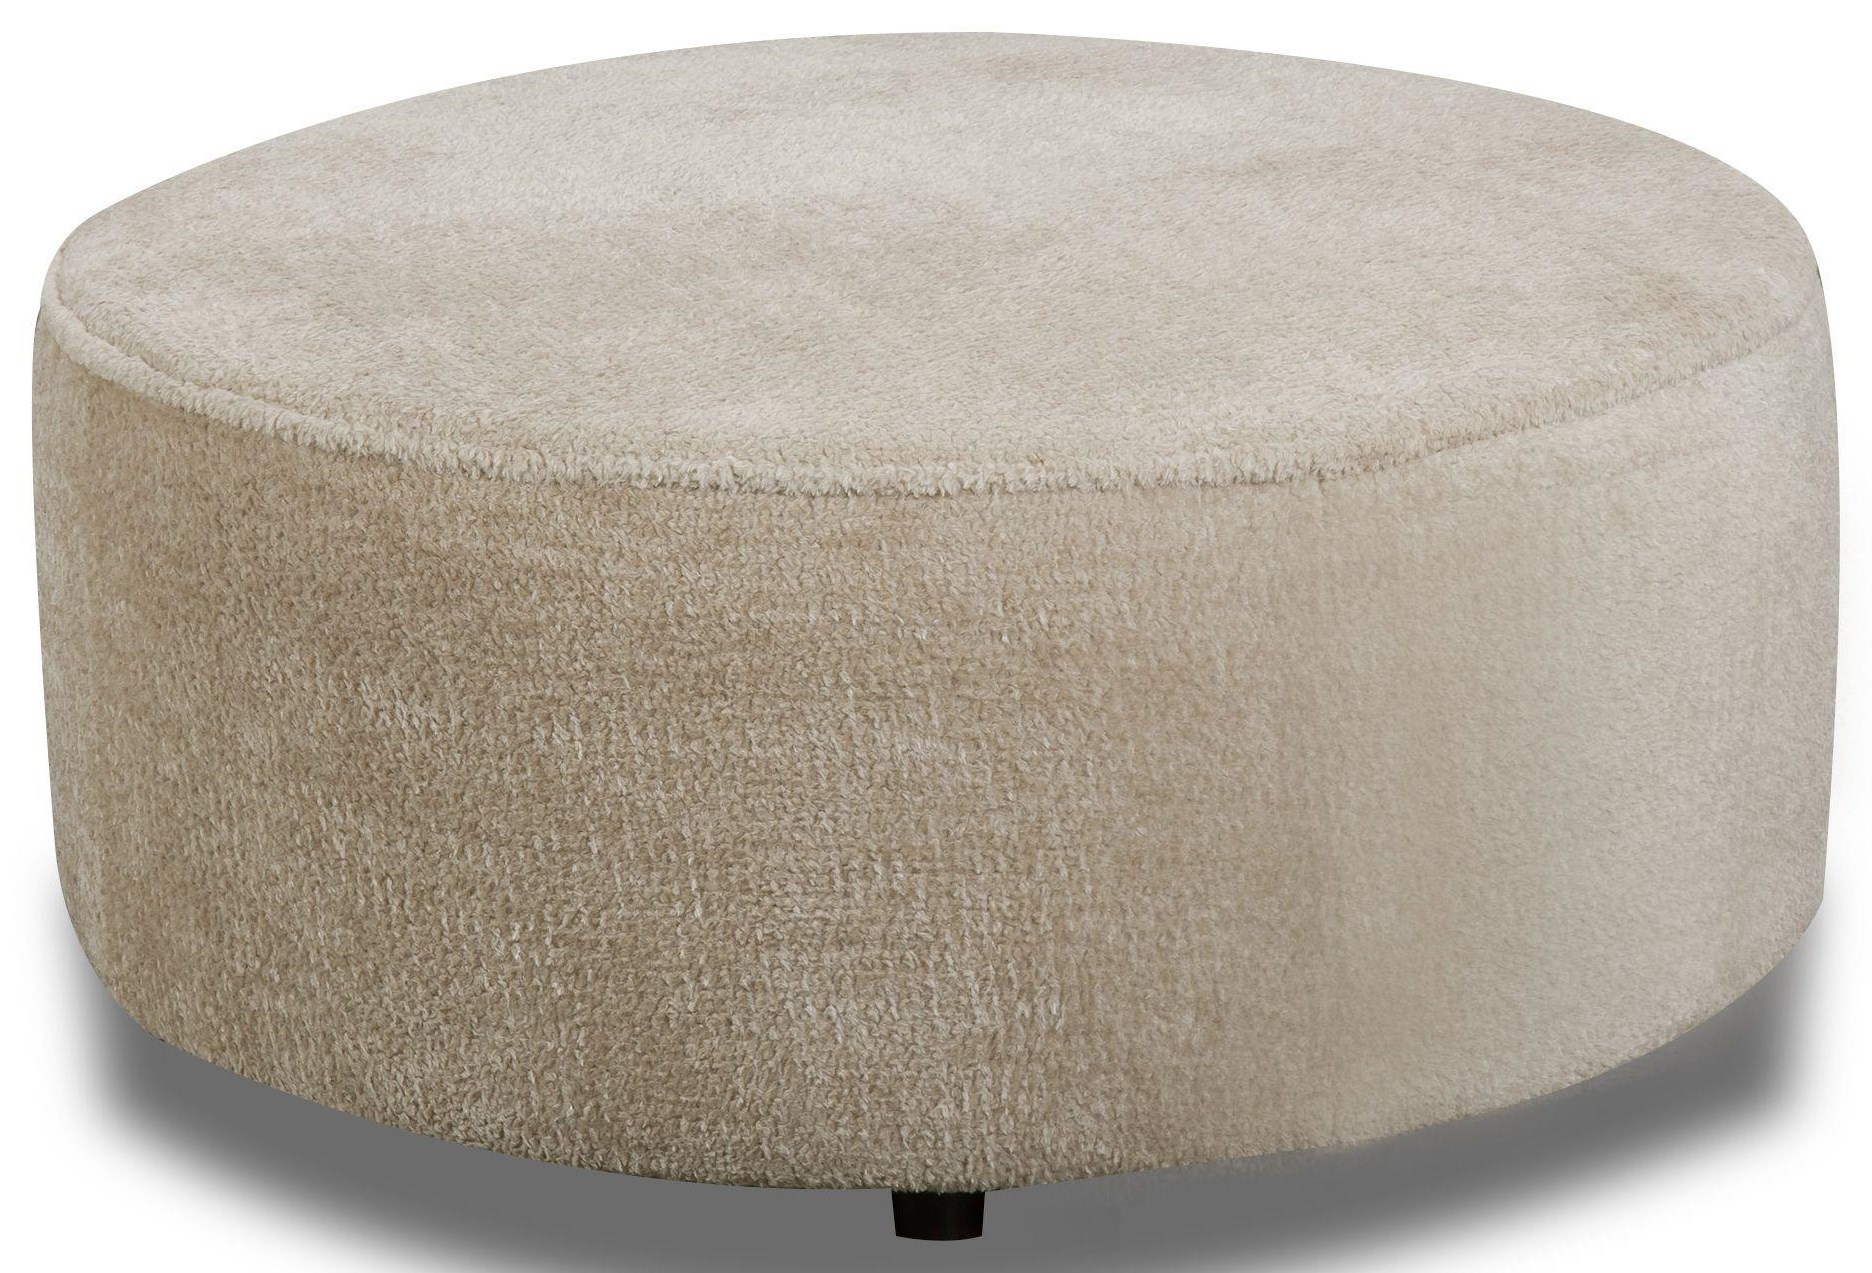 St. Charles Round Ottoman by Behold Home at Darvin Furniture